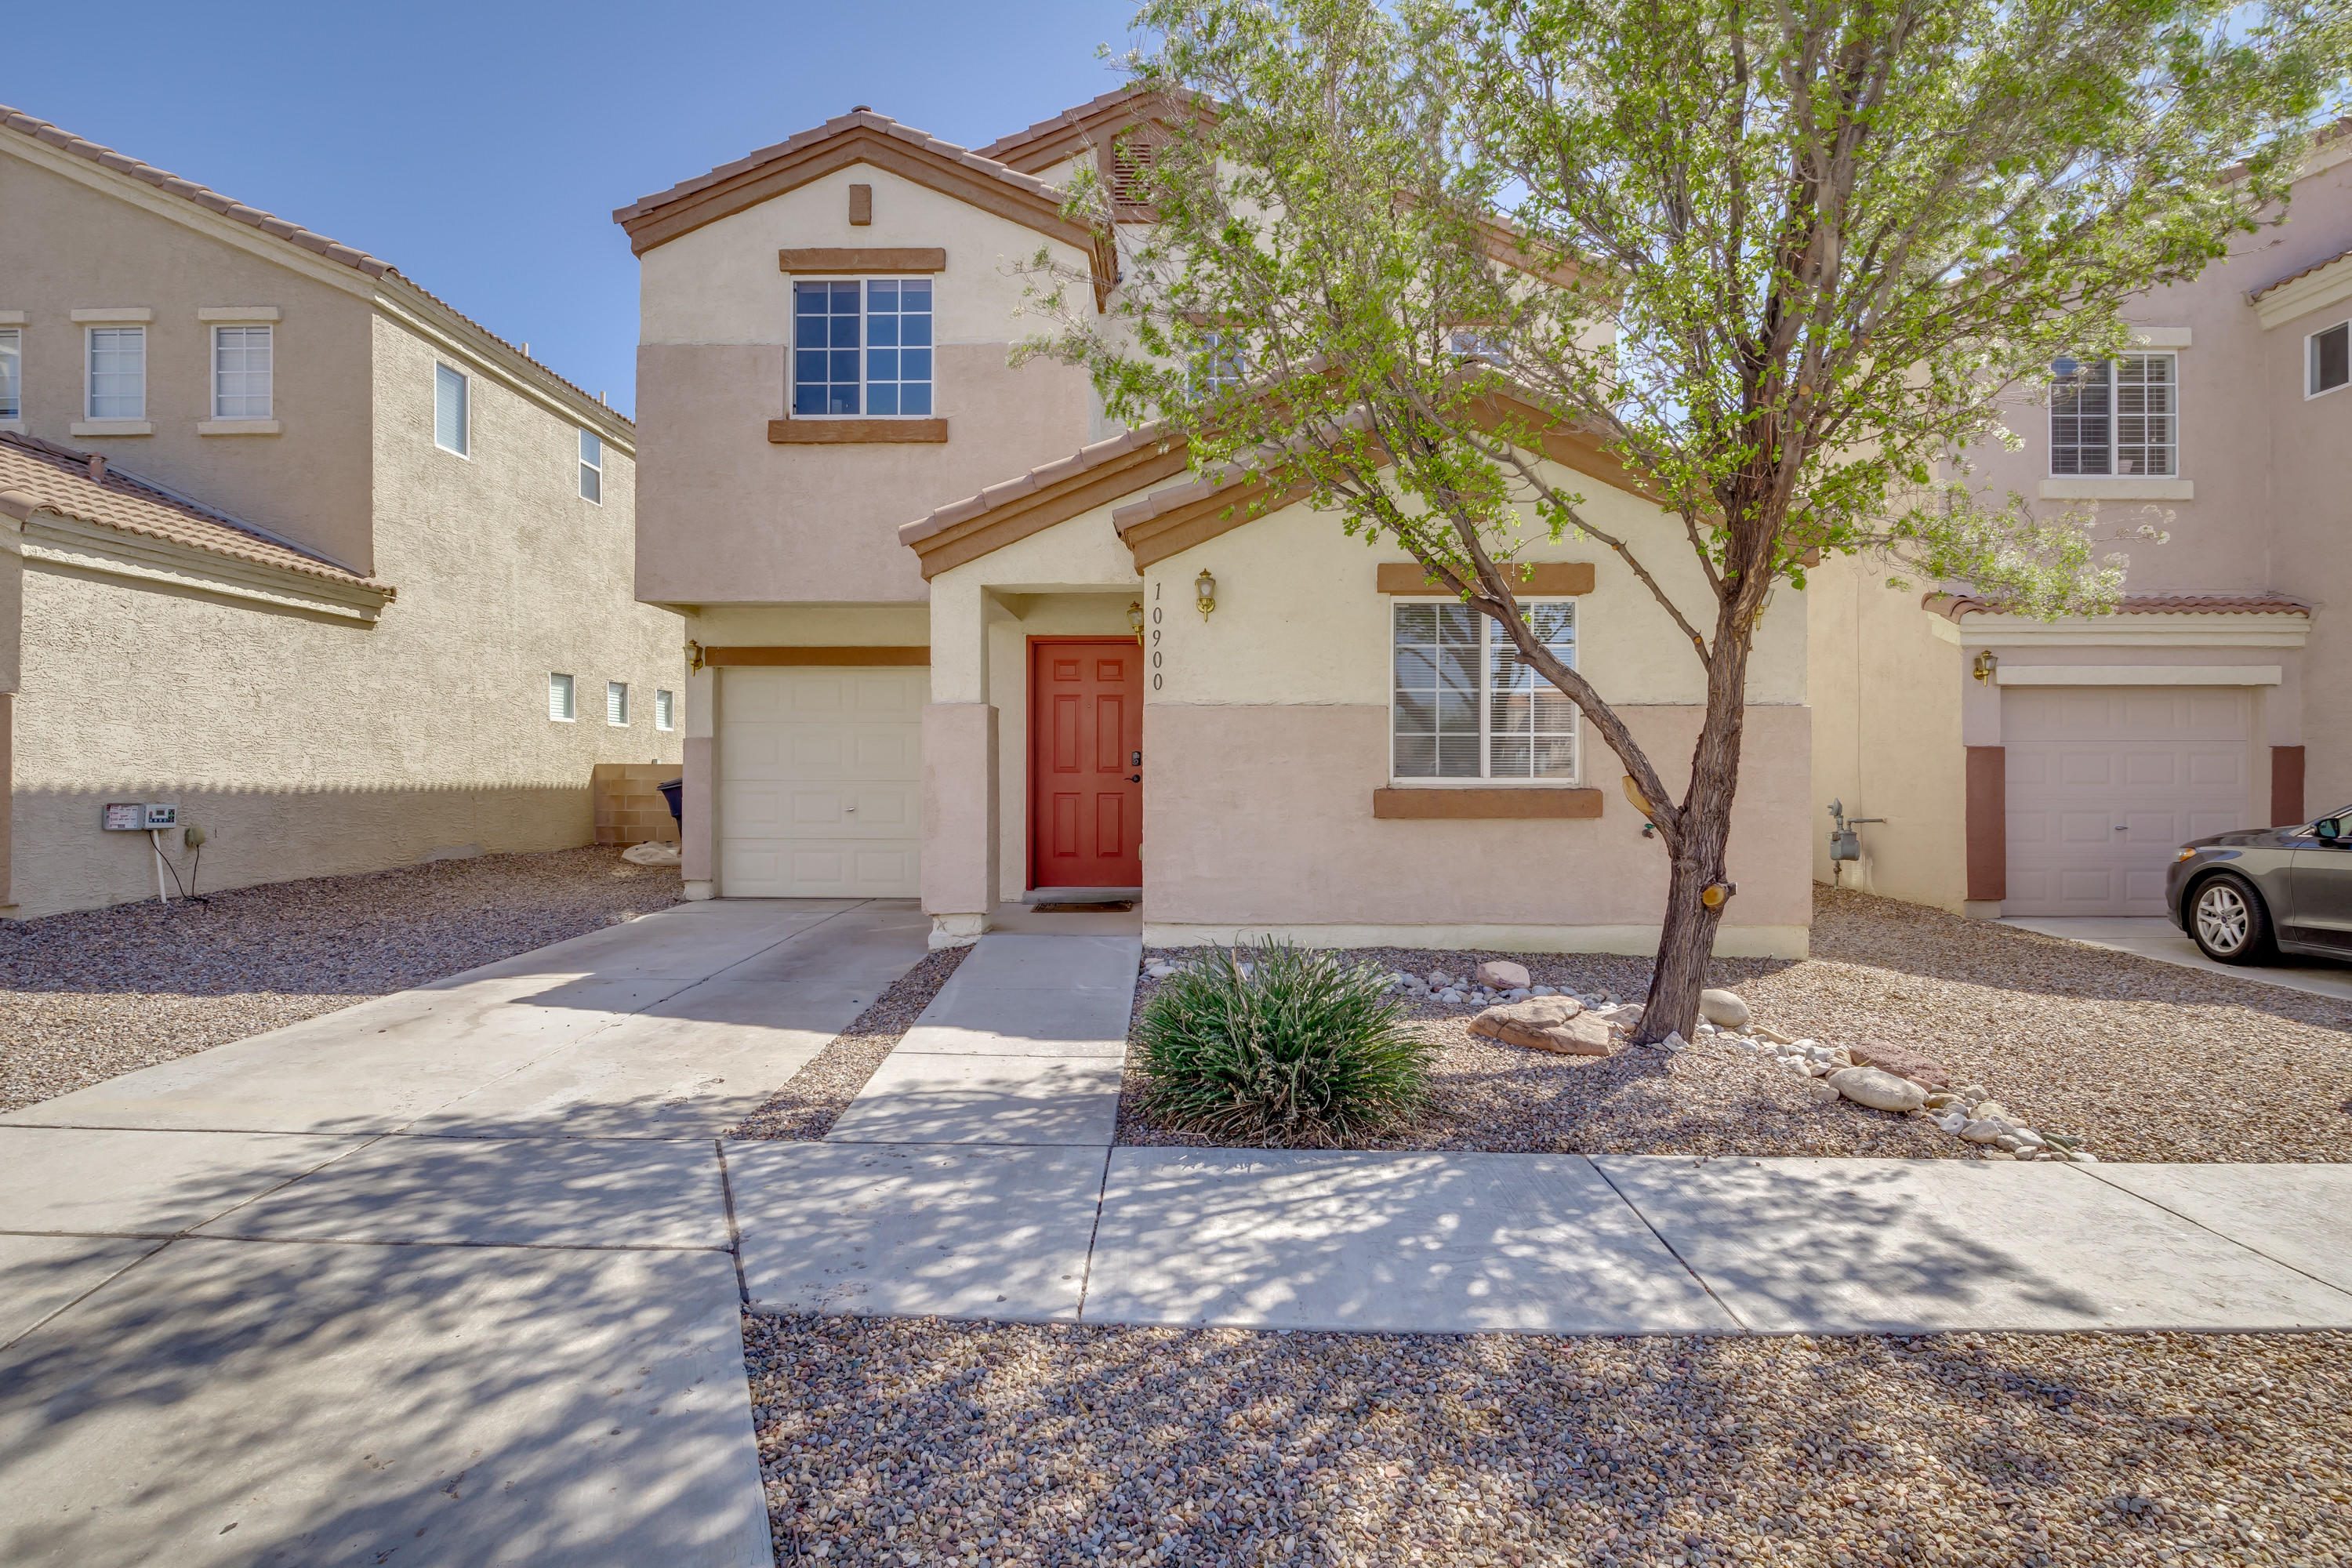 This beautiful 4 bedroom home is nestled in a gated community in the SE Heights. Stainless steel appliances and granite countertops adorn the kitchen. Updated bathrooms. Conveniently located near KAFB, Sandia Labs and shopping.